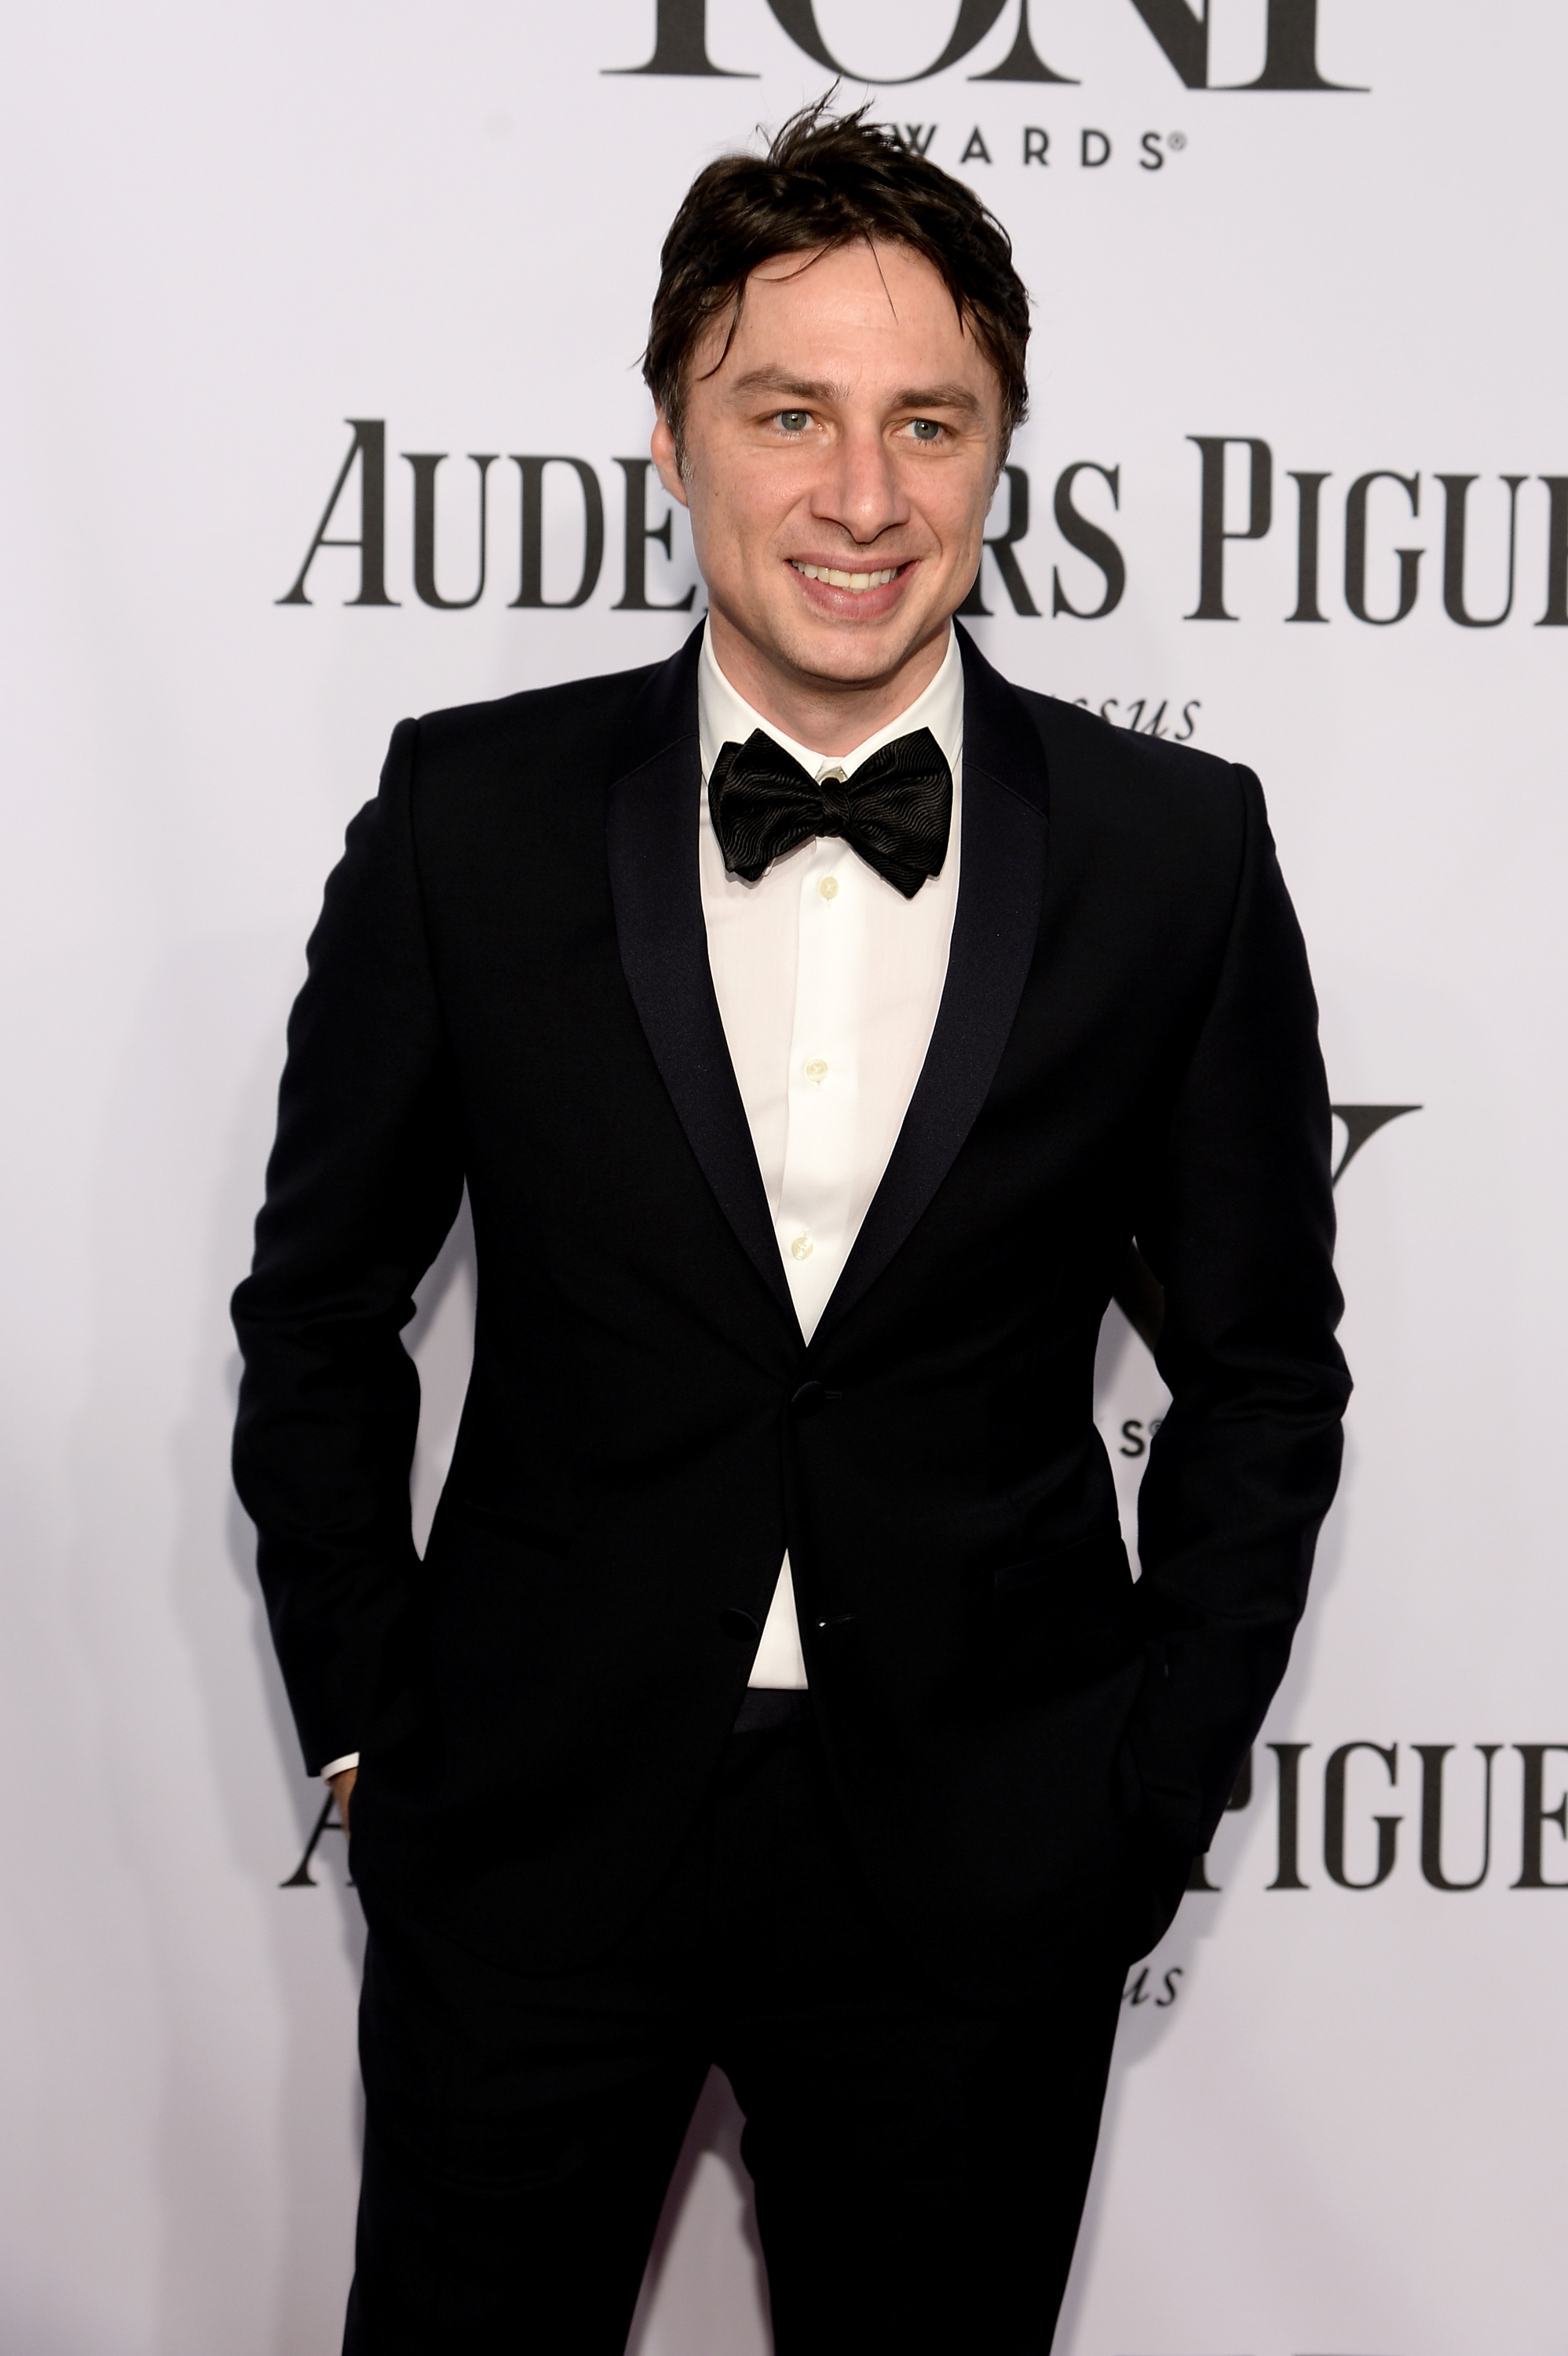 Actor Zach Braff  attends the 68th Annual Tony Awards at Radio City Music Hall on June 8, 2014 in New York City.